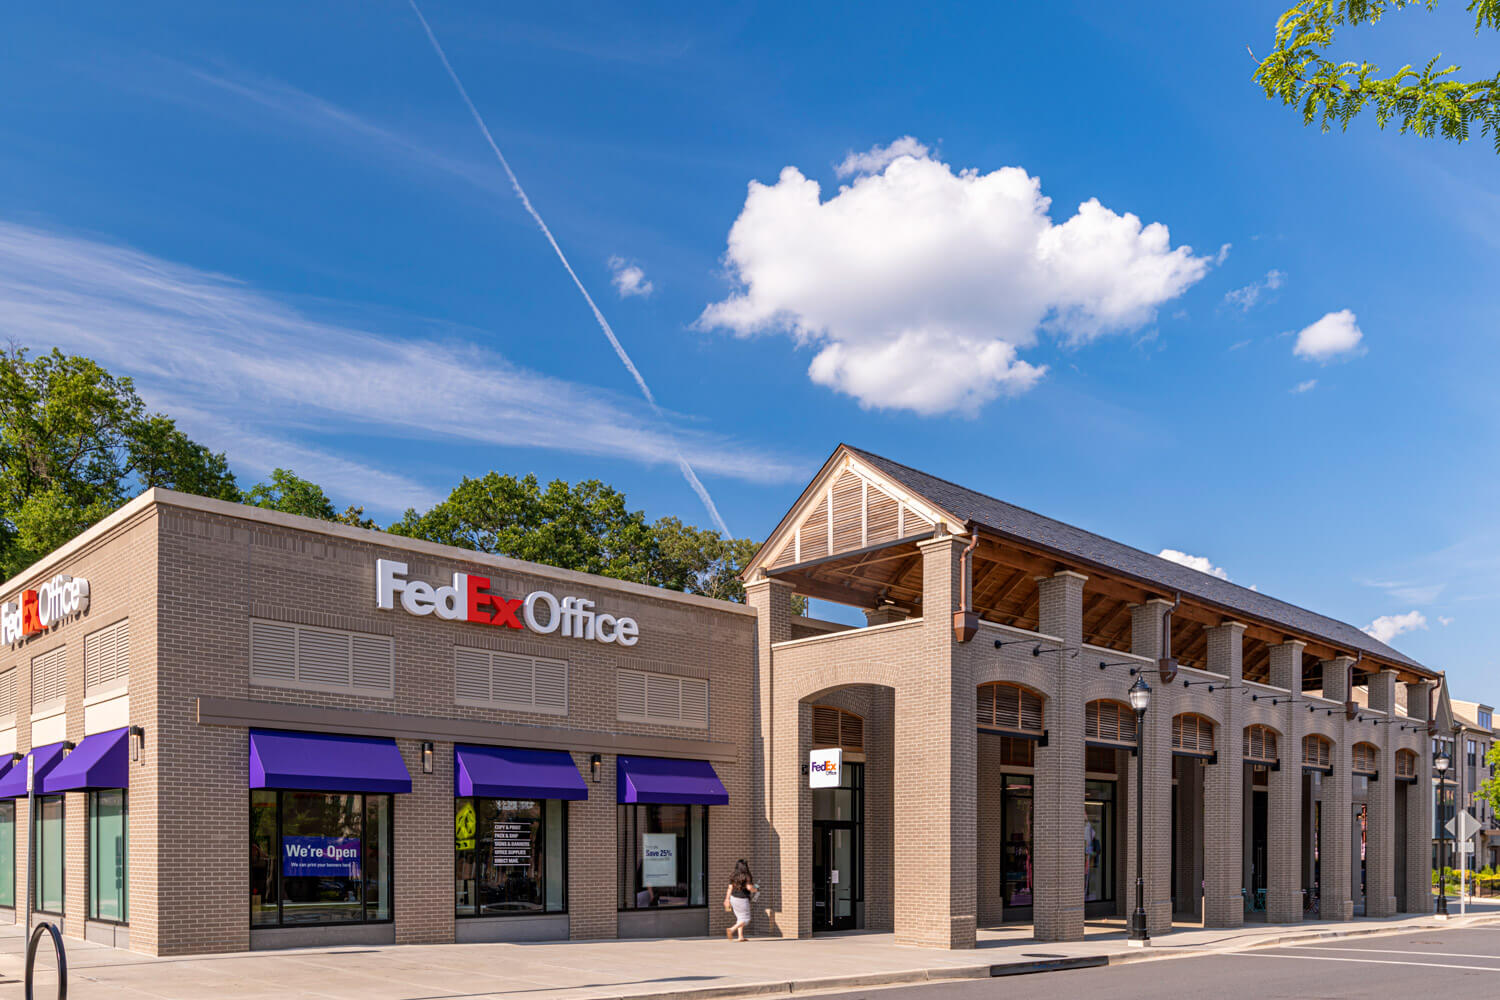 Print, ship, and shop at the local FedEx Office